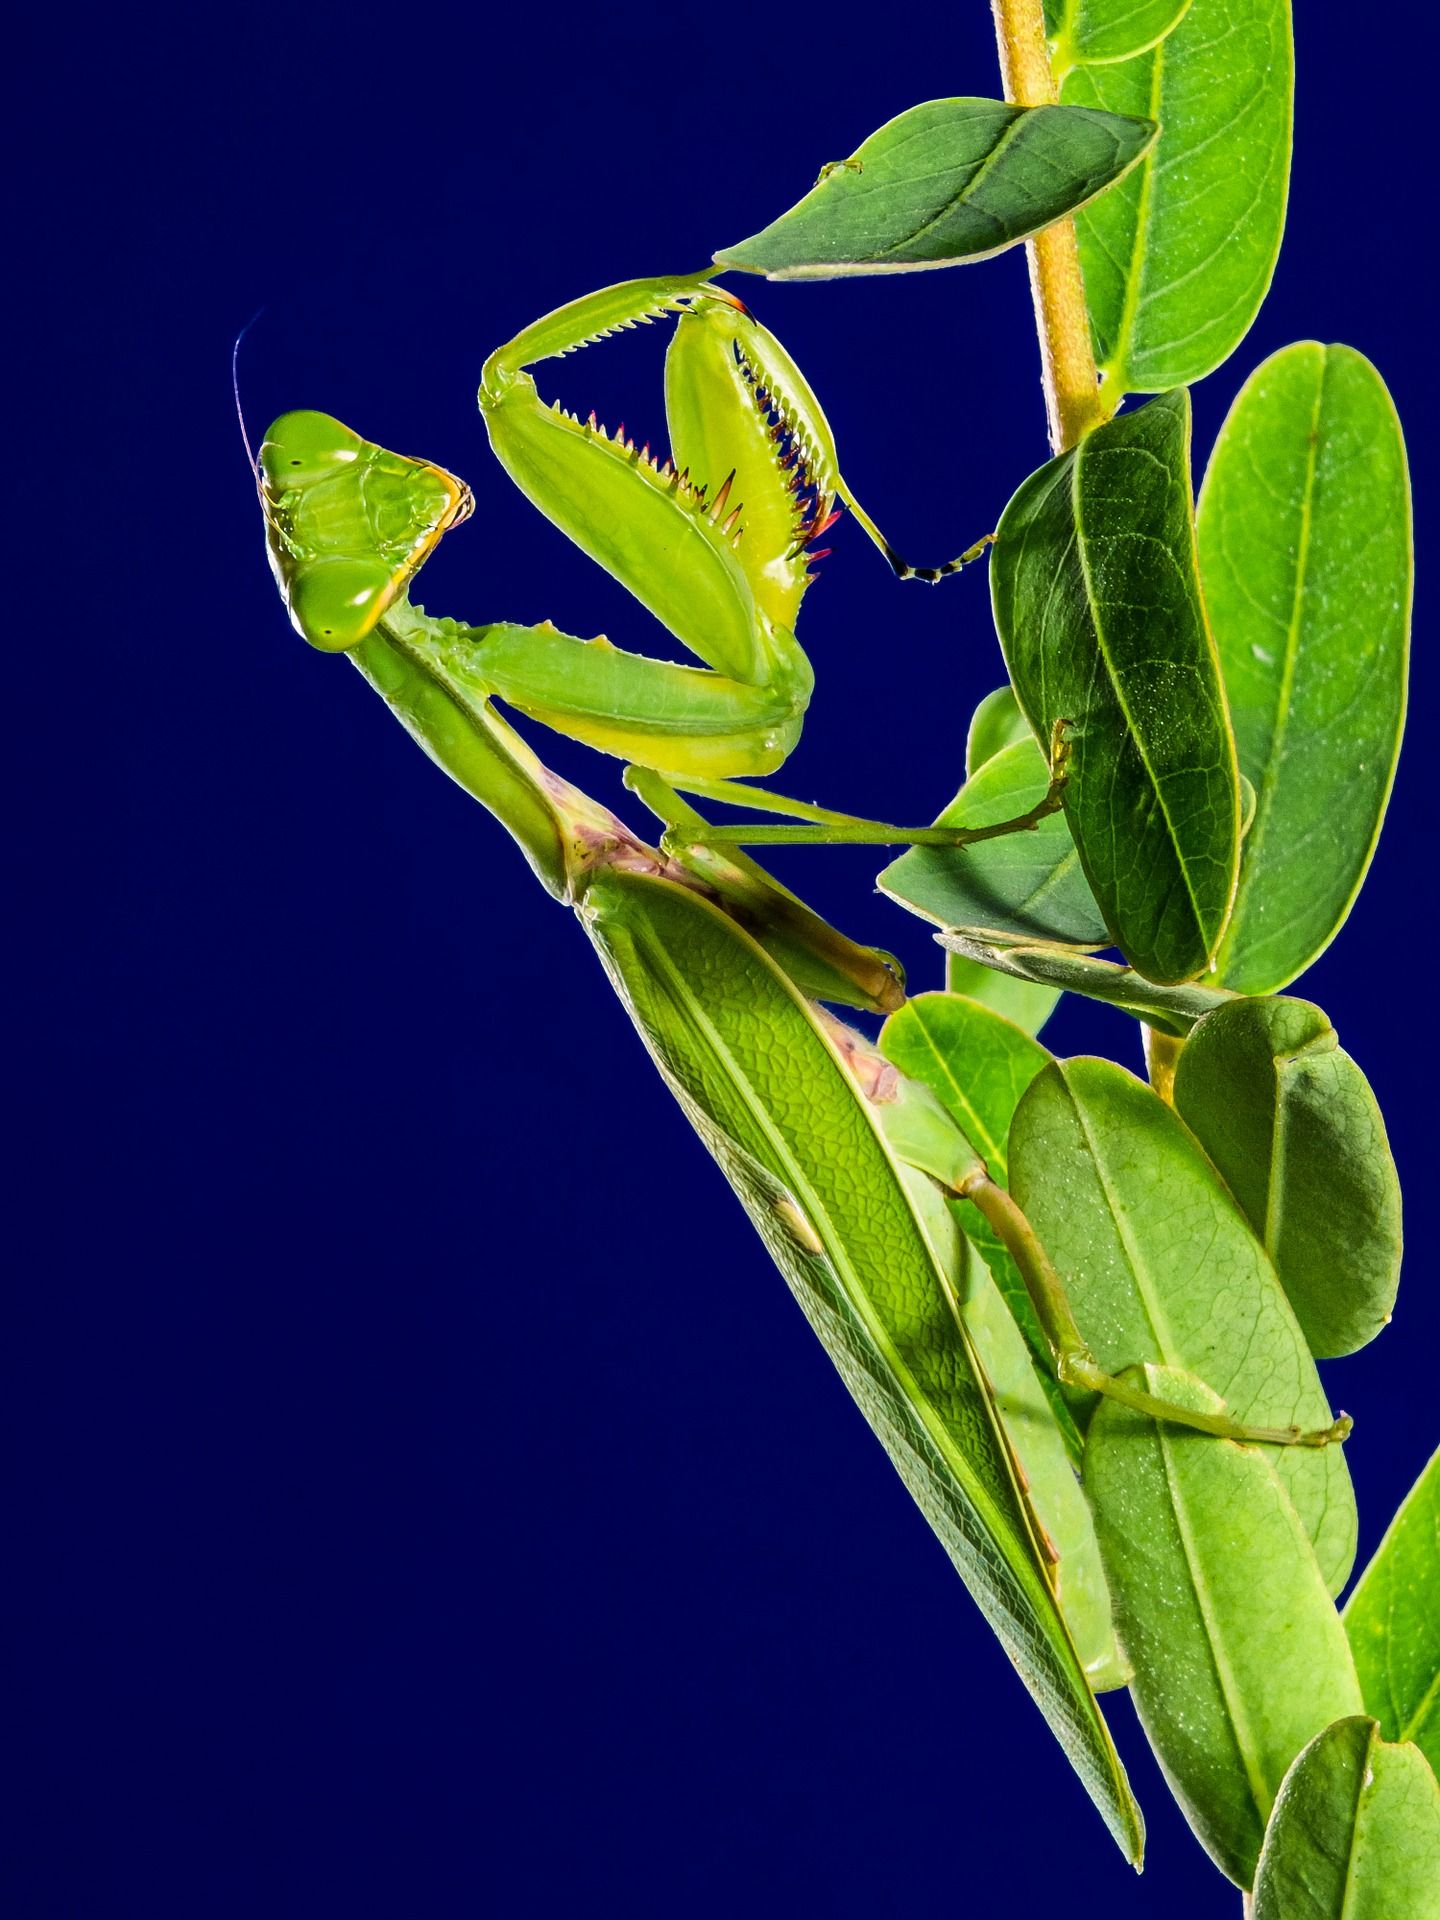 The Praying Mantis is an extremely beneficial insect